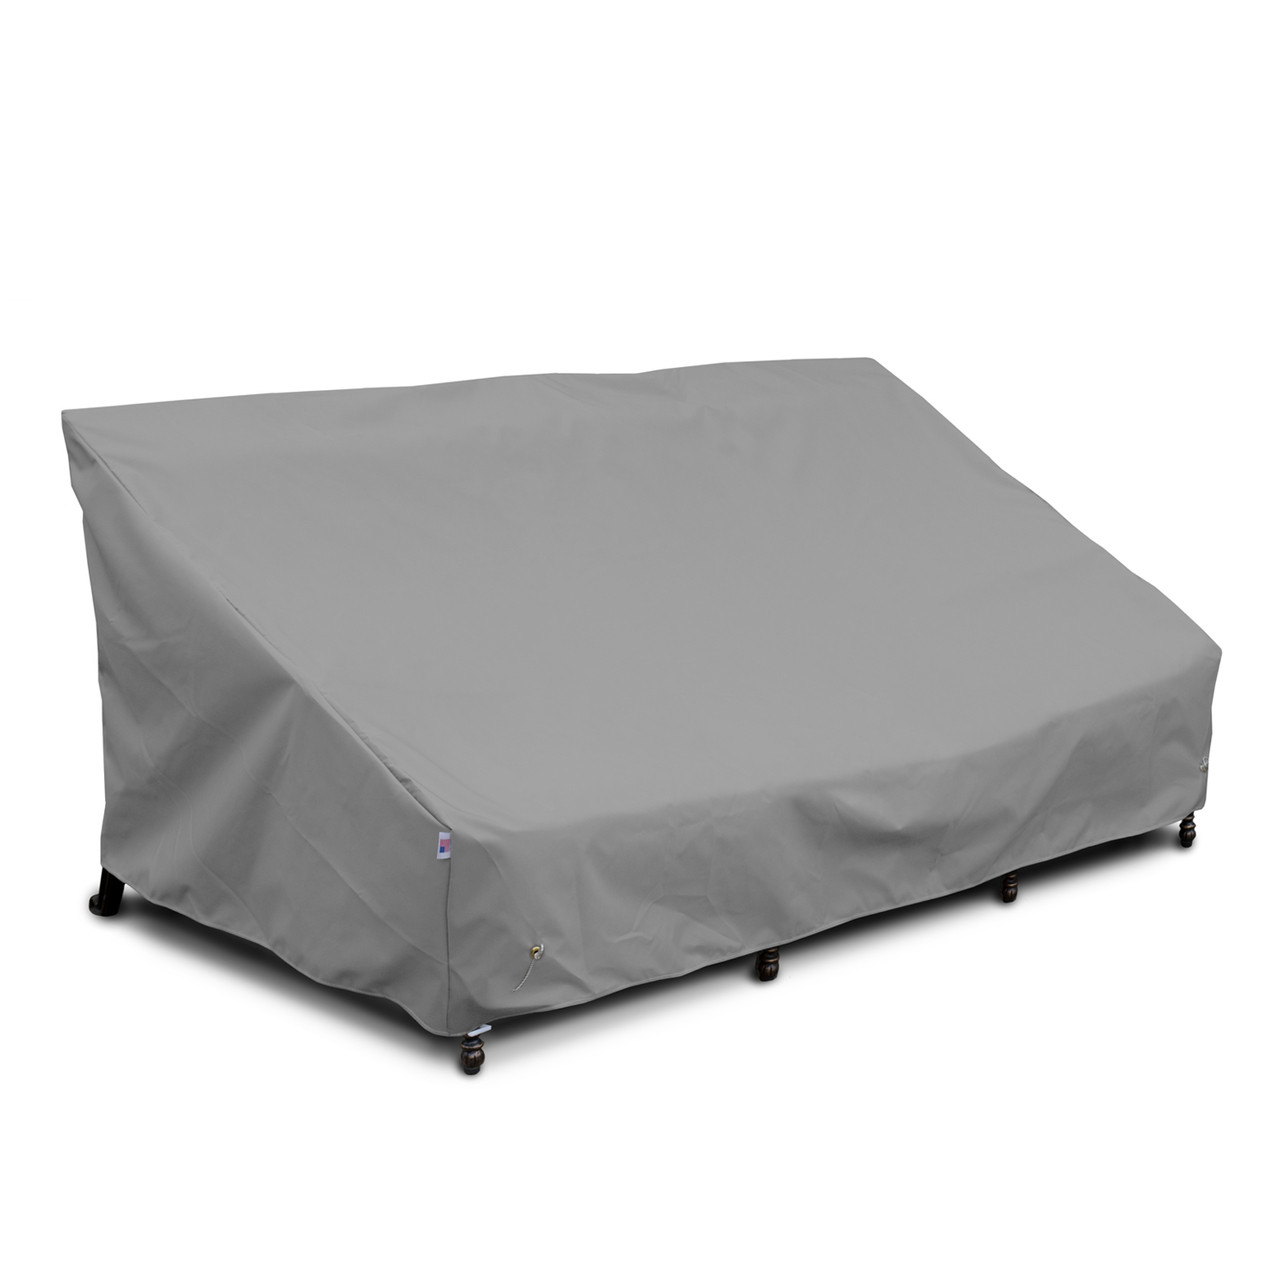 Sofa Cover Outdoor Furniture Covers